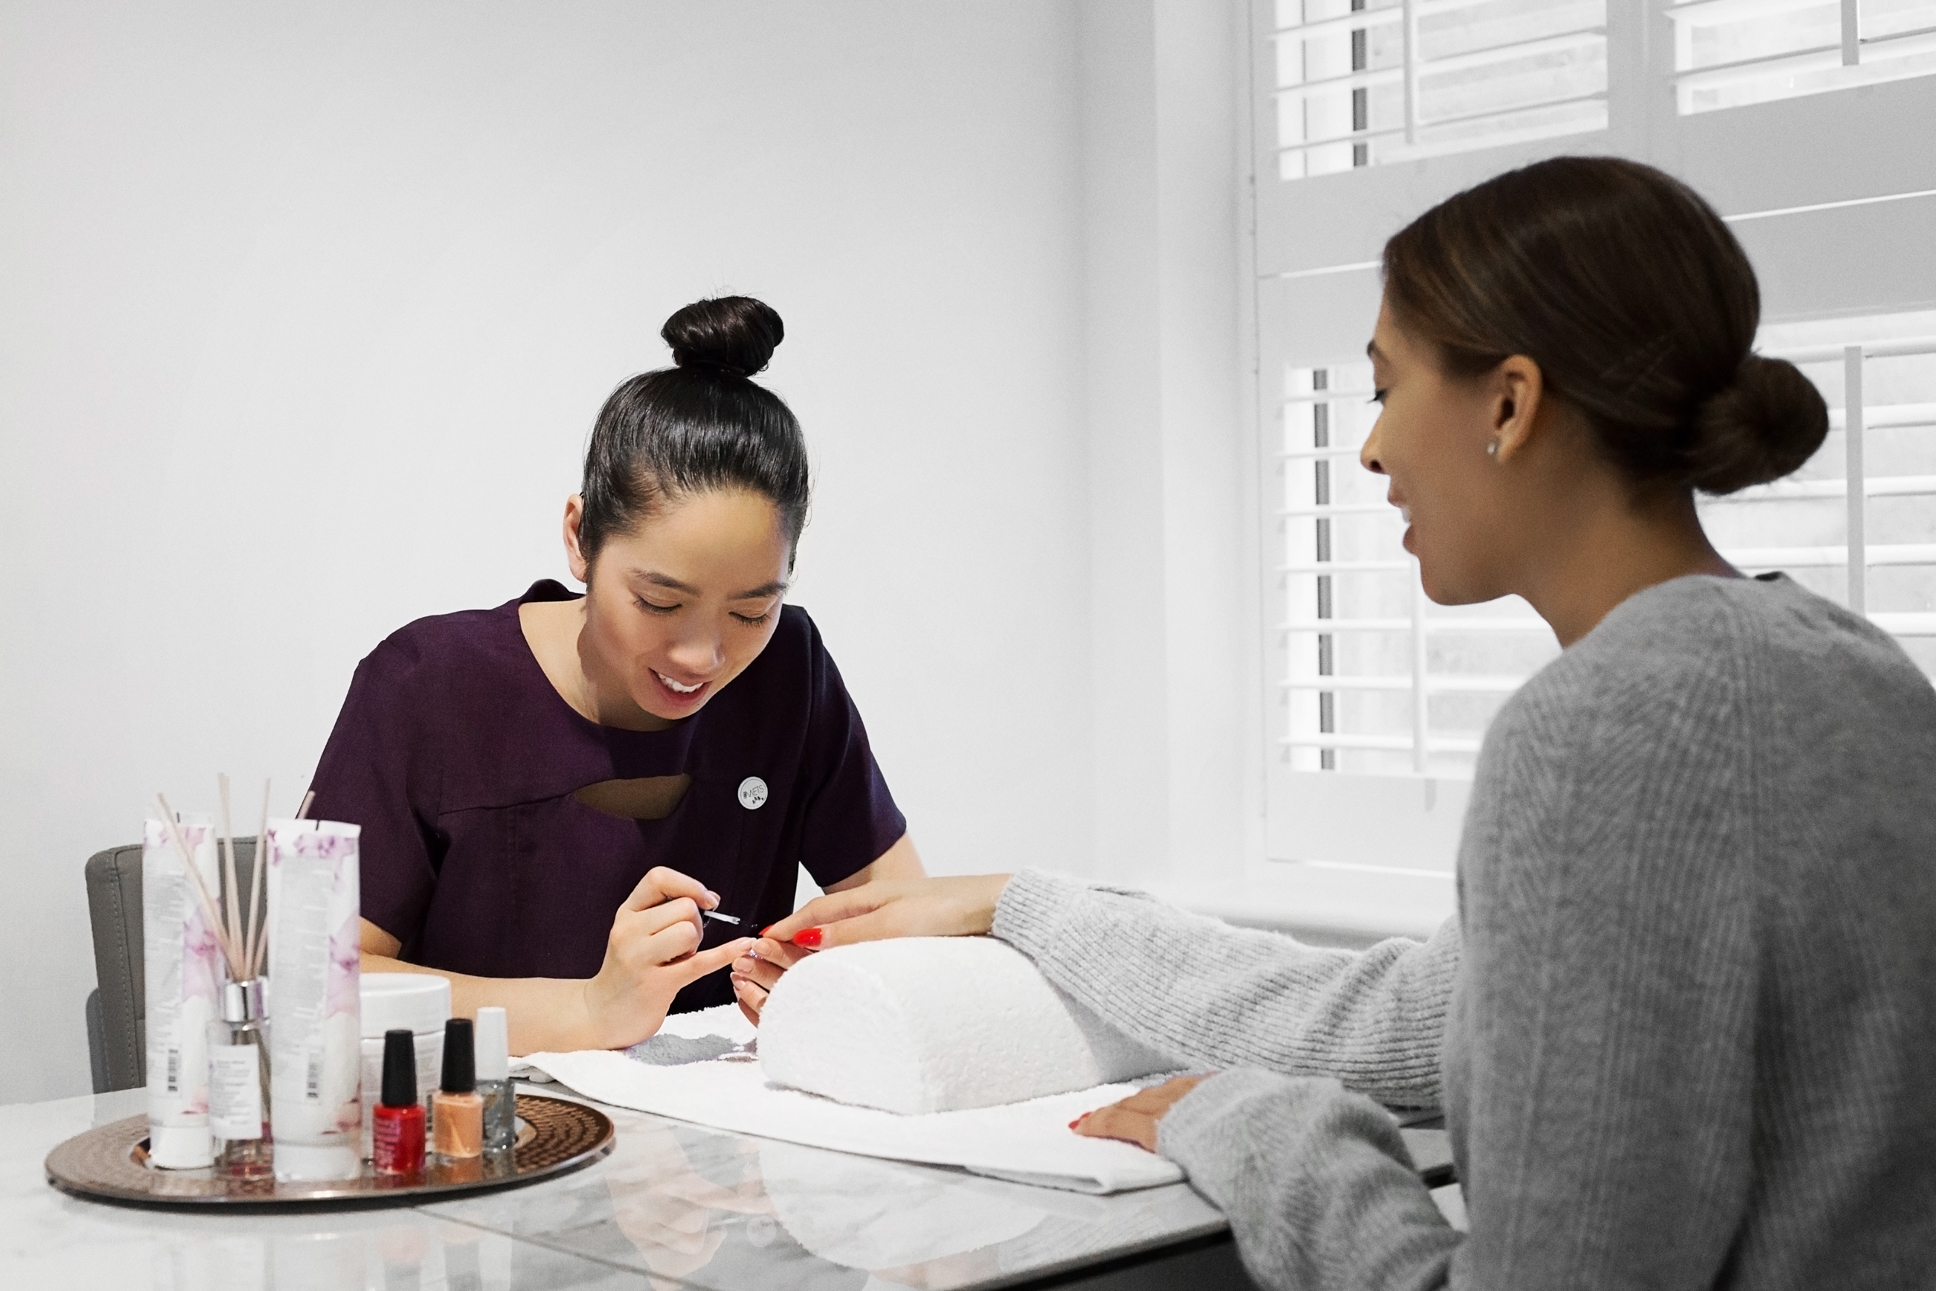 Mobile nail technician & nail artist in London | About - Nails by Mets